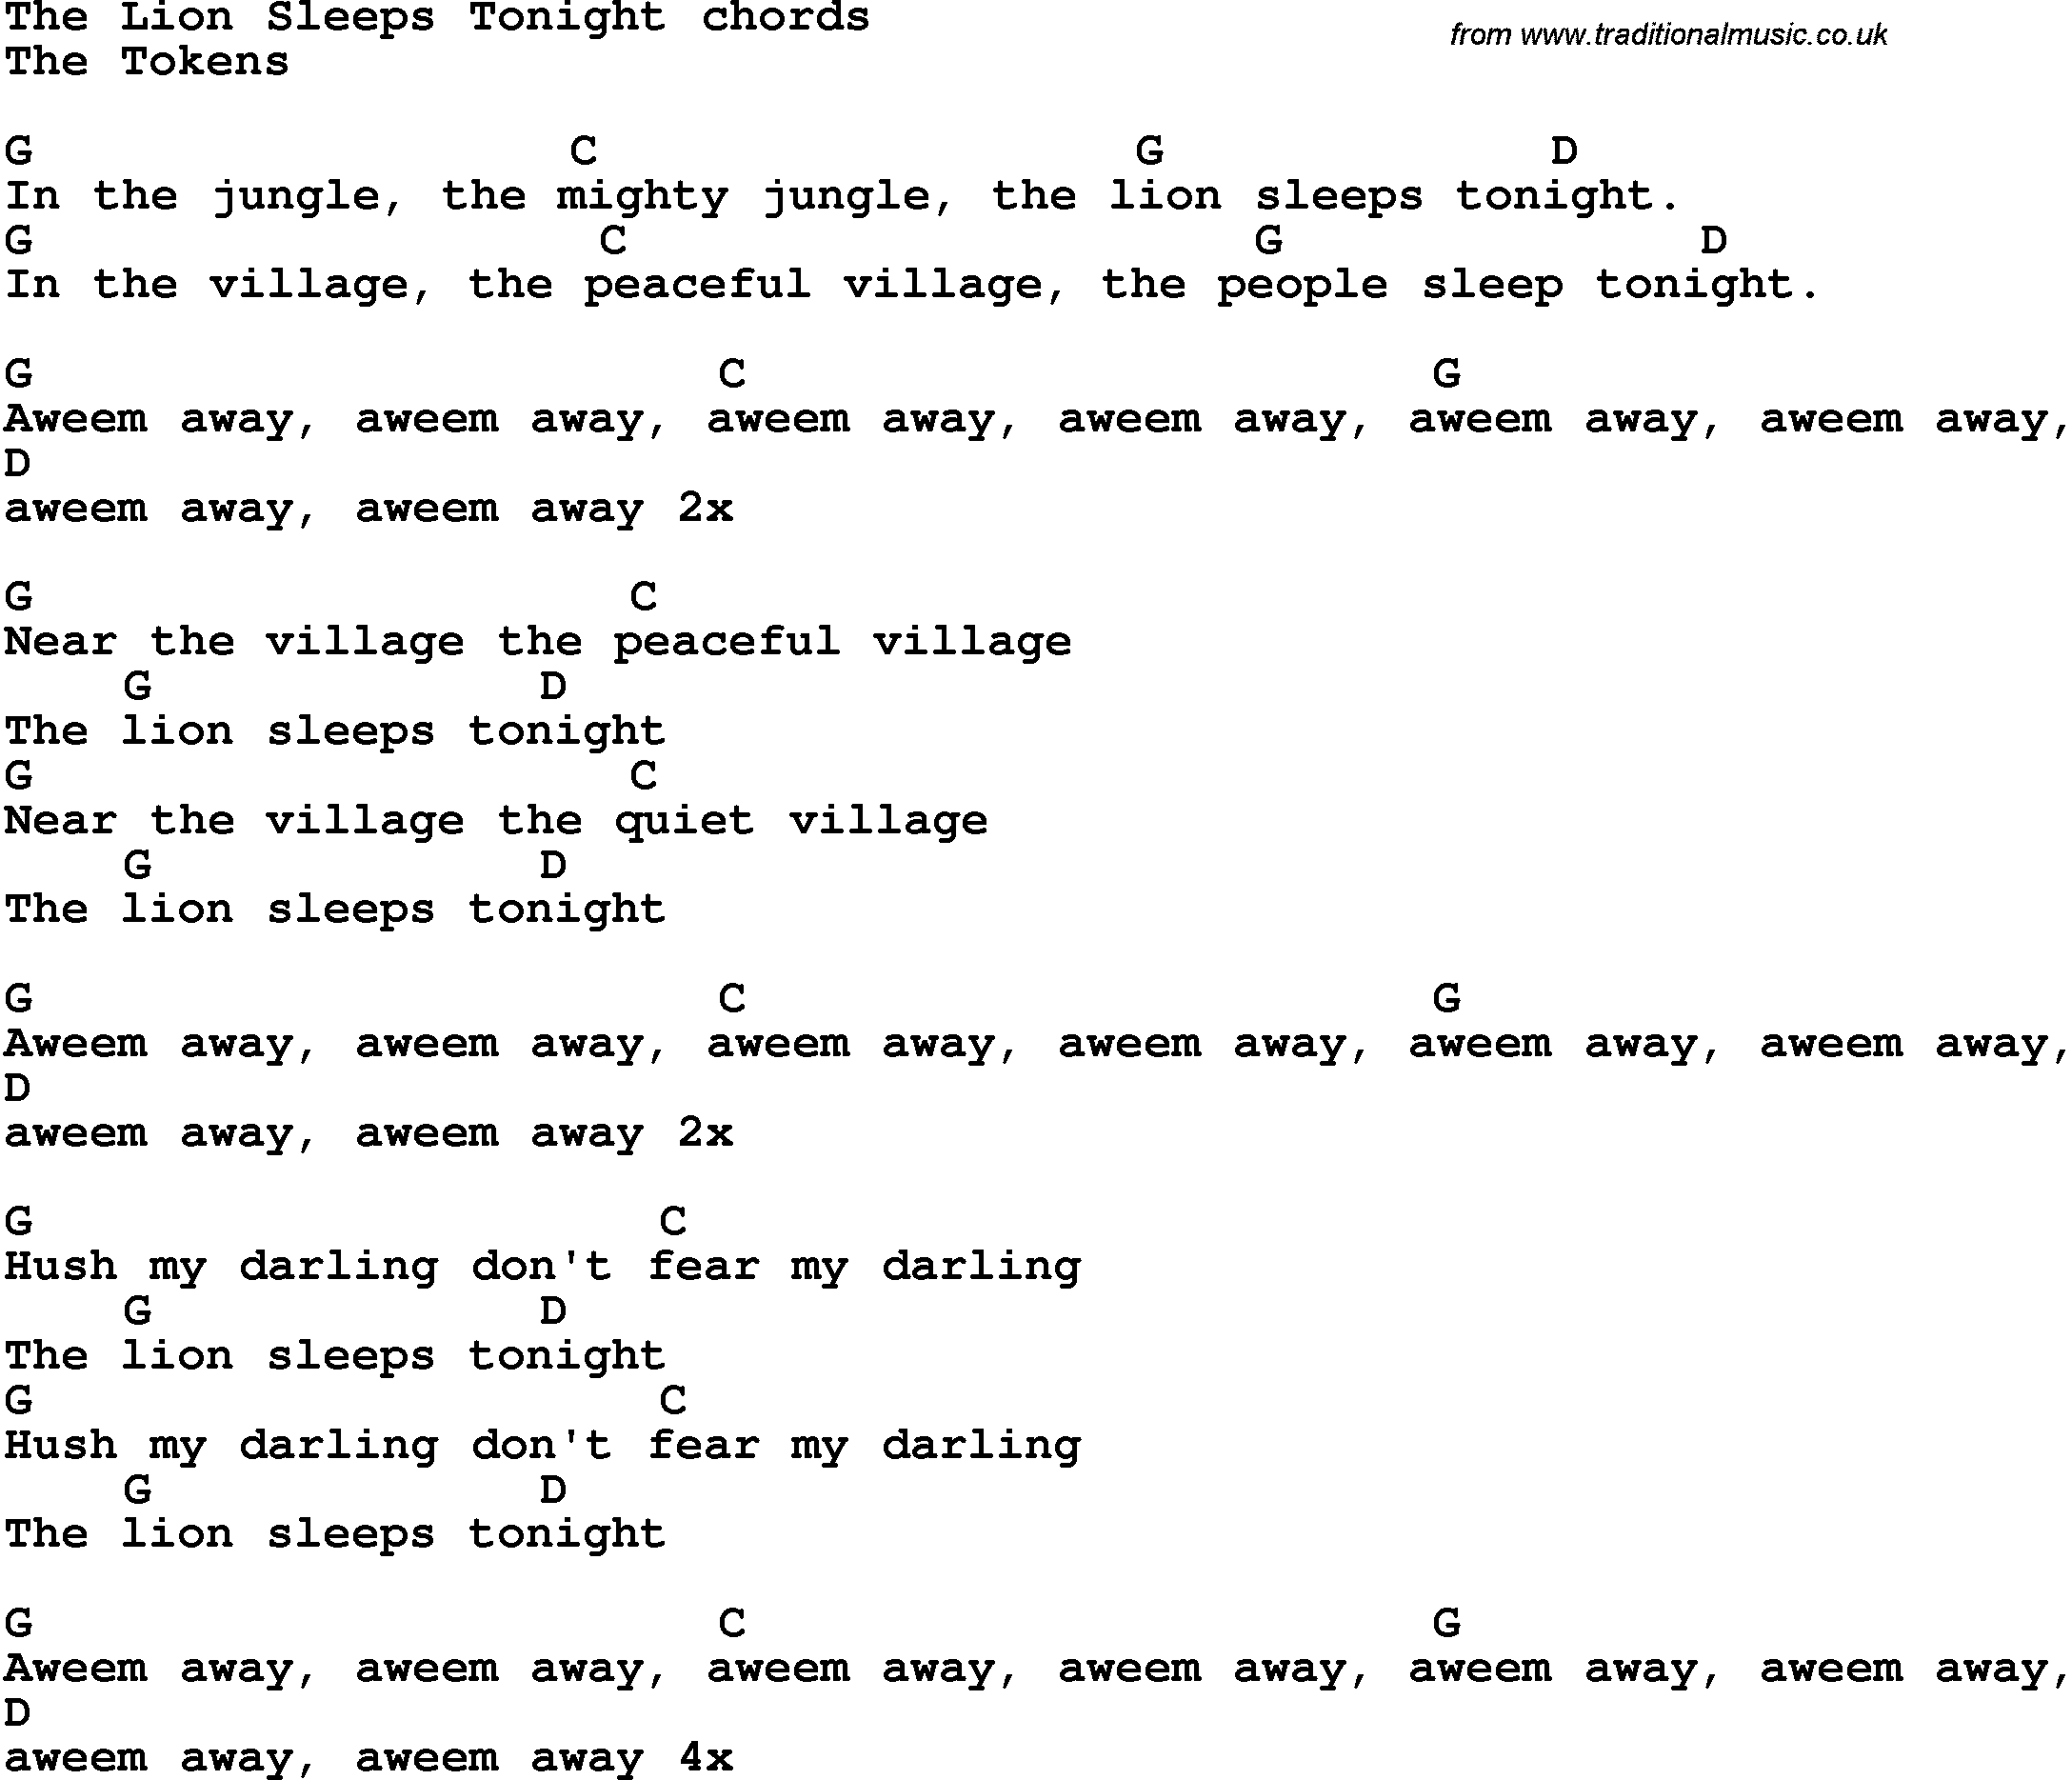 Song Lyrics With Guitar Chords For The Lion Sleeps Tonight